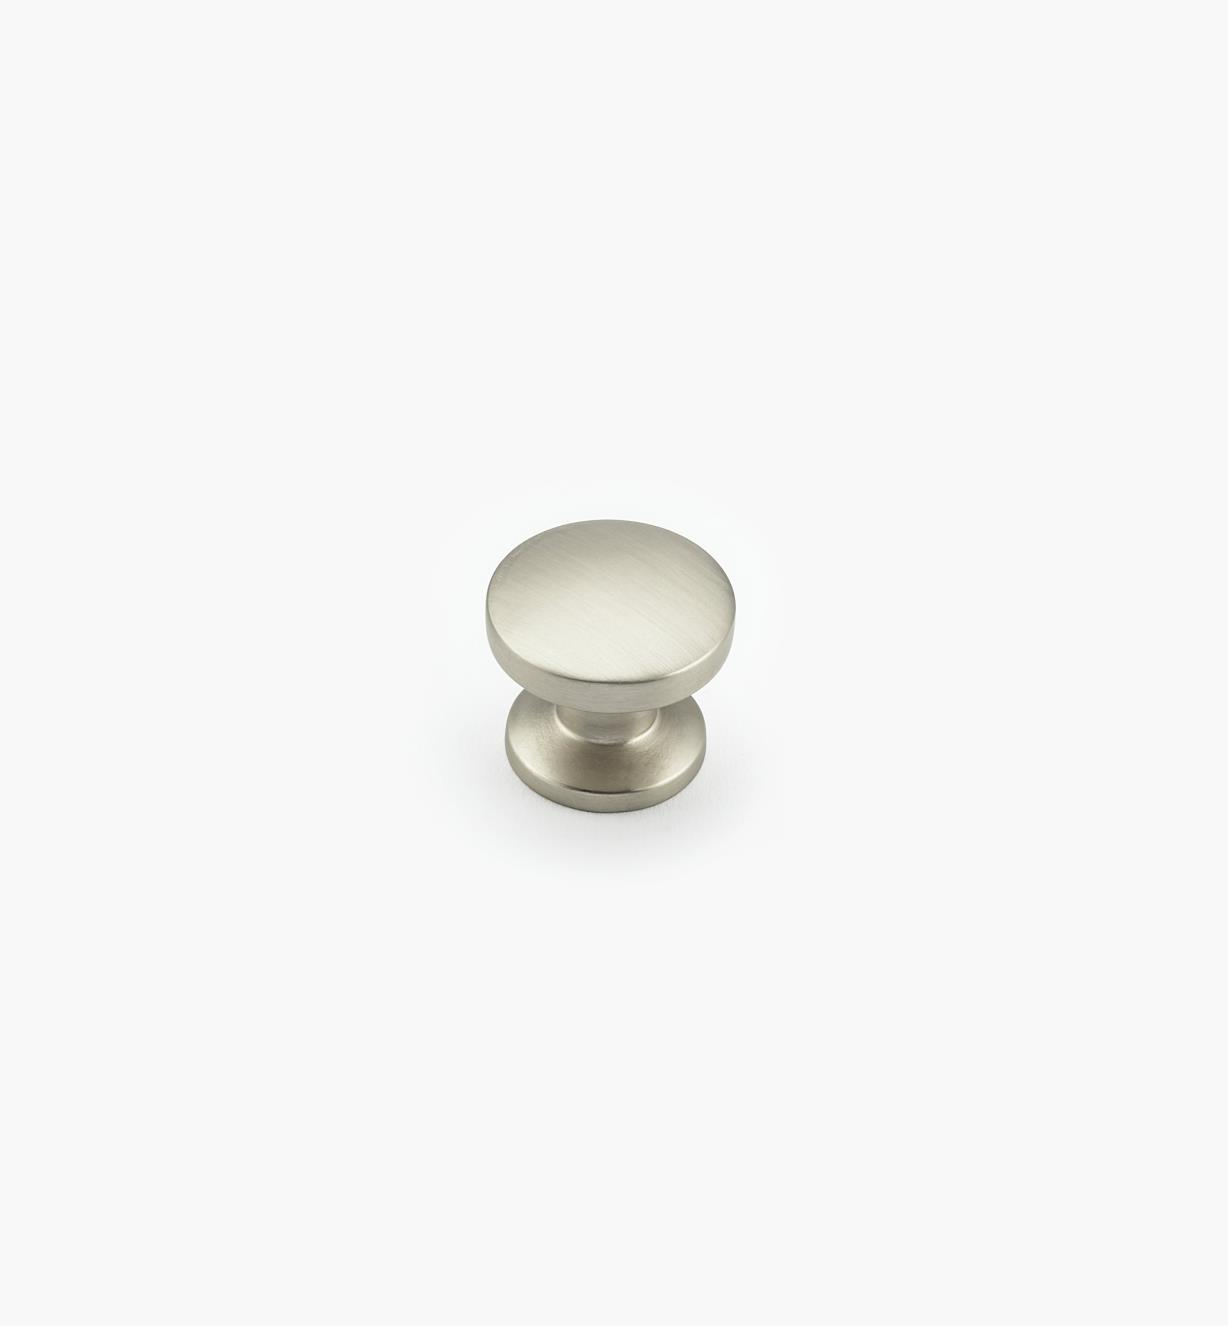 "02G0421 - Northport 1 3/8"" Satin Nickel Round Knob"